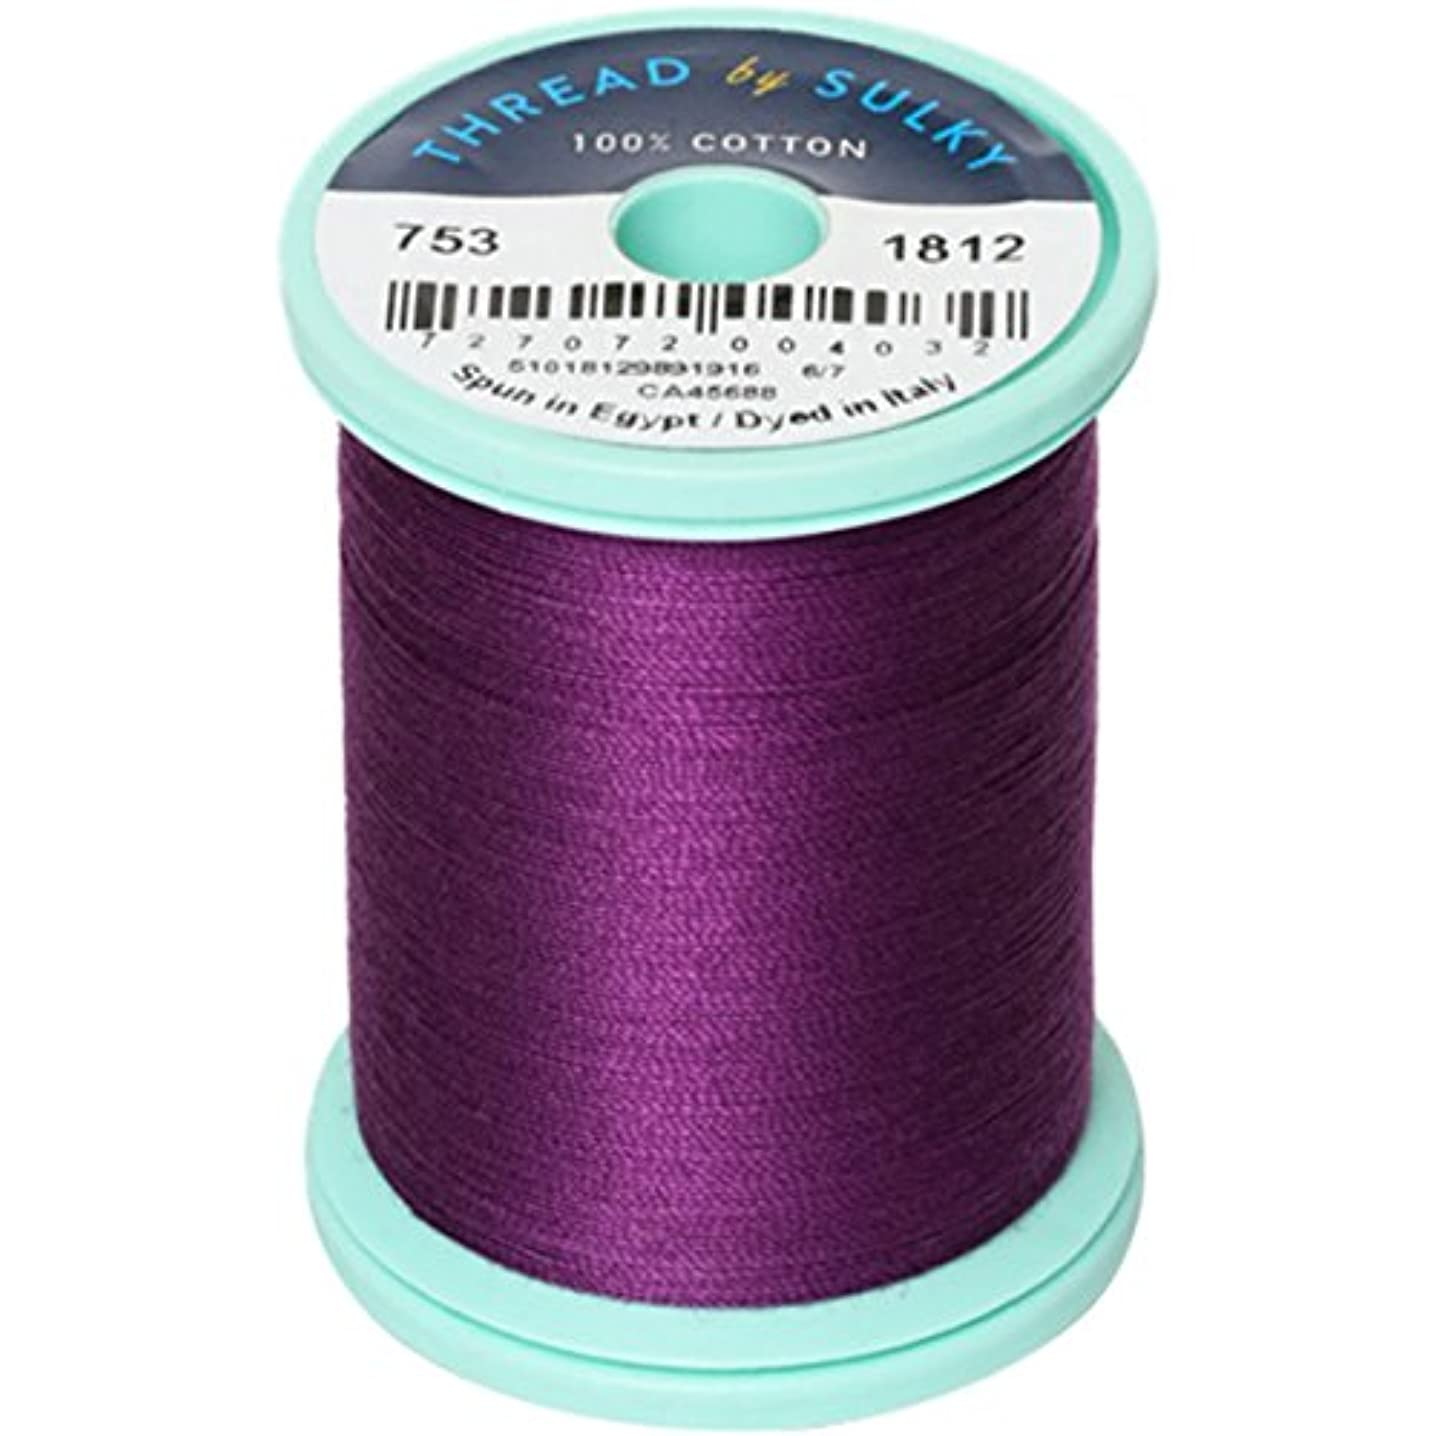 Sulky 753-1812 Cotton and Steel Thread 50wt 660 yds -Wildflower